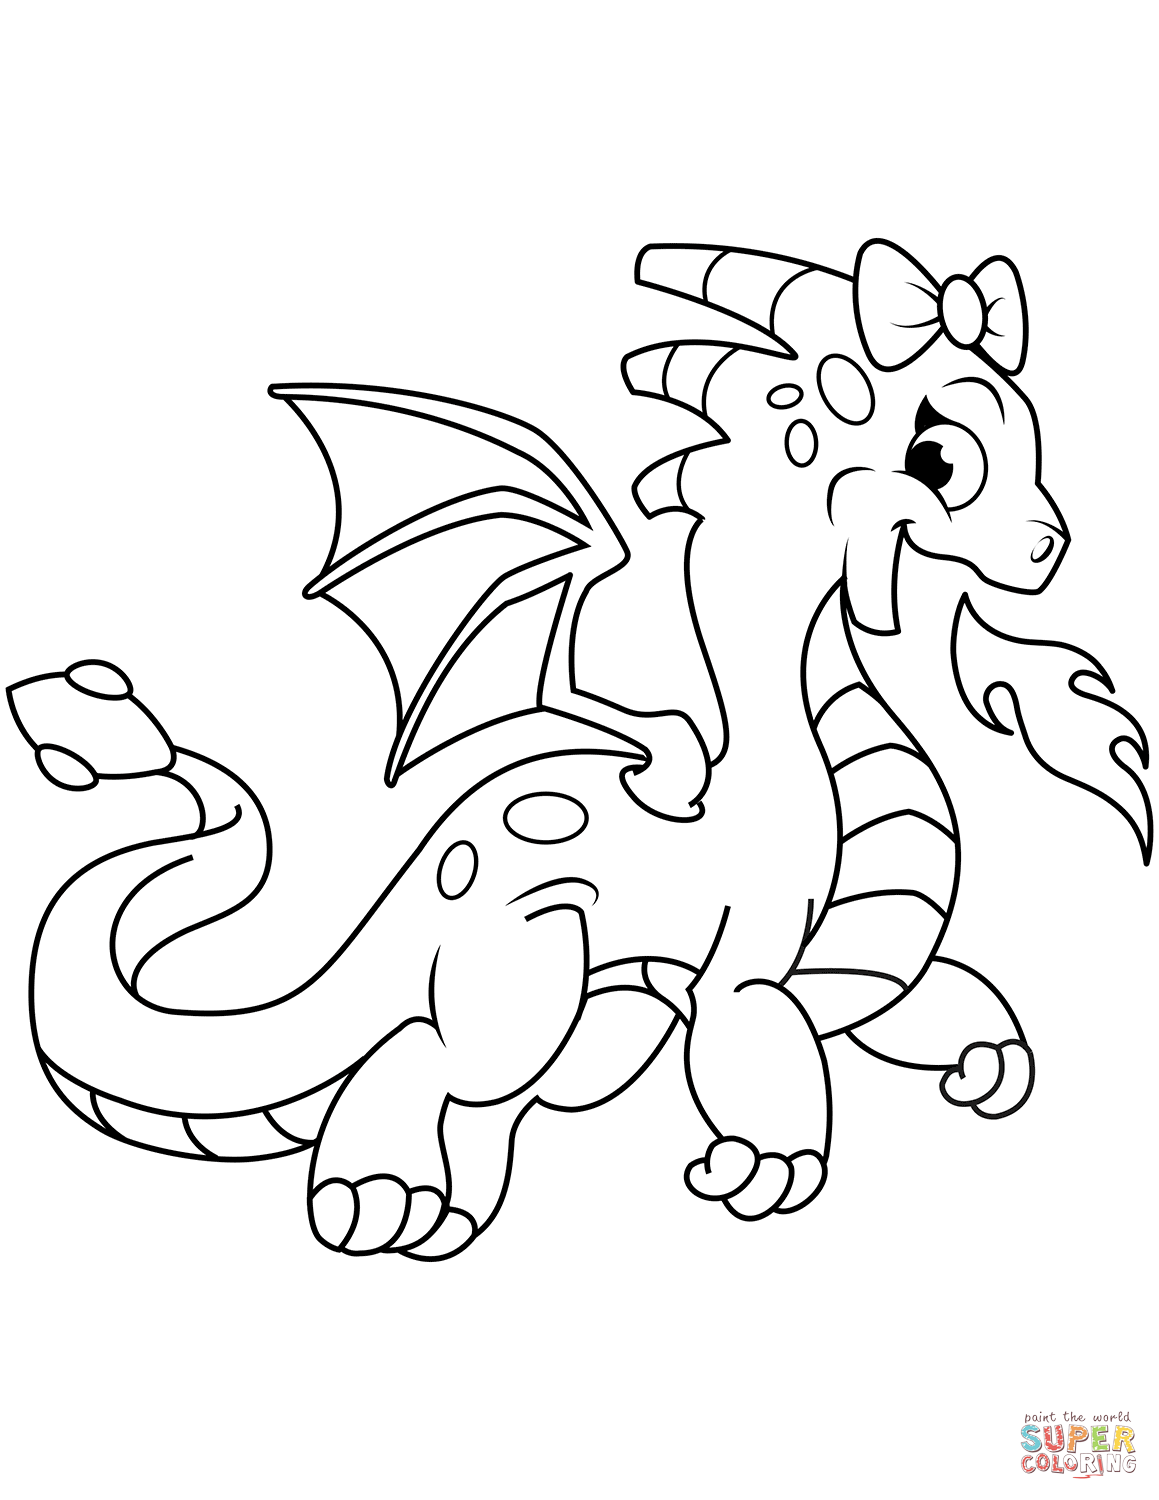 Dragon Coloring Pages At Getcolorings